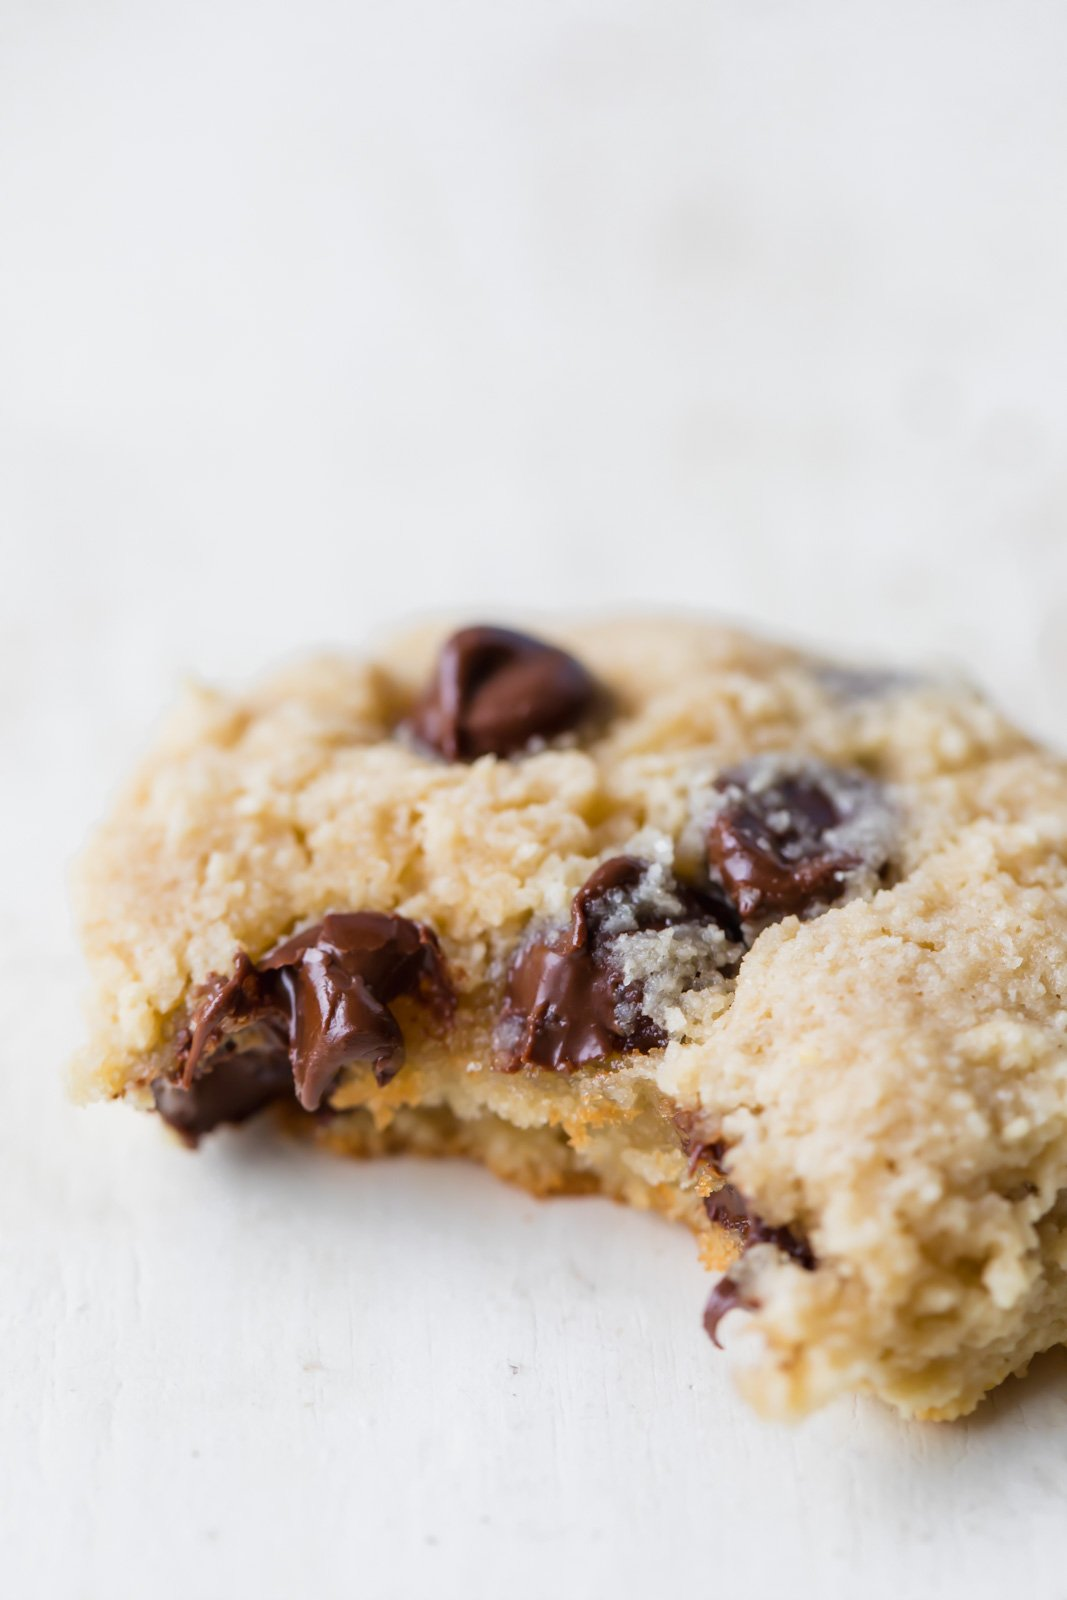 paleo almond flour chocolate chip cookie with a bite taken out